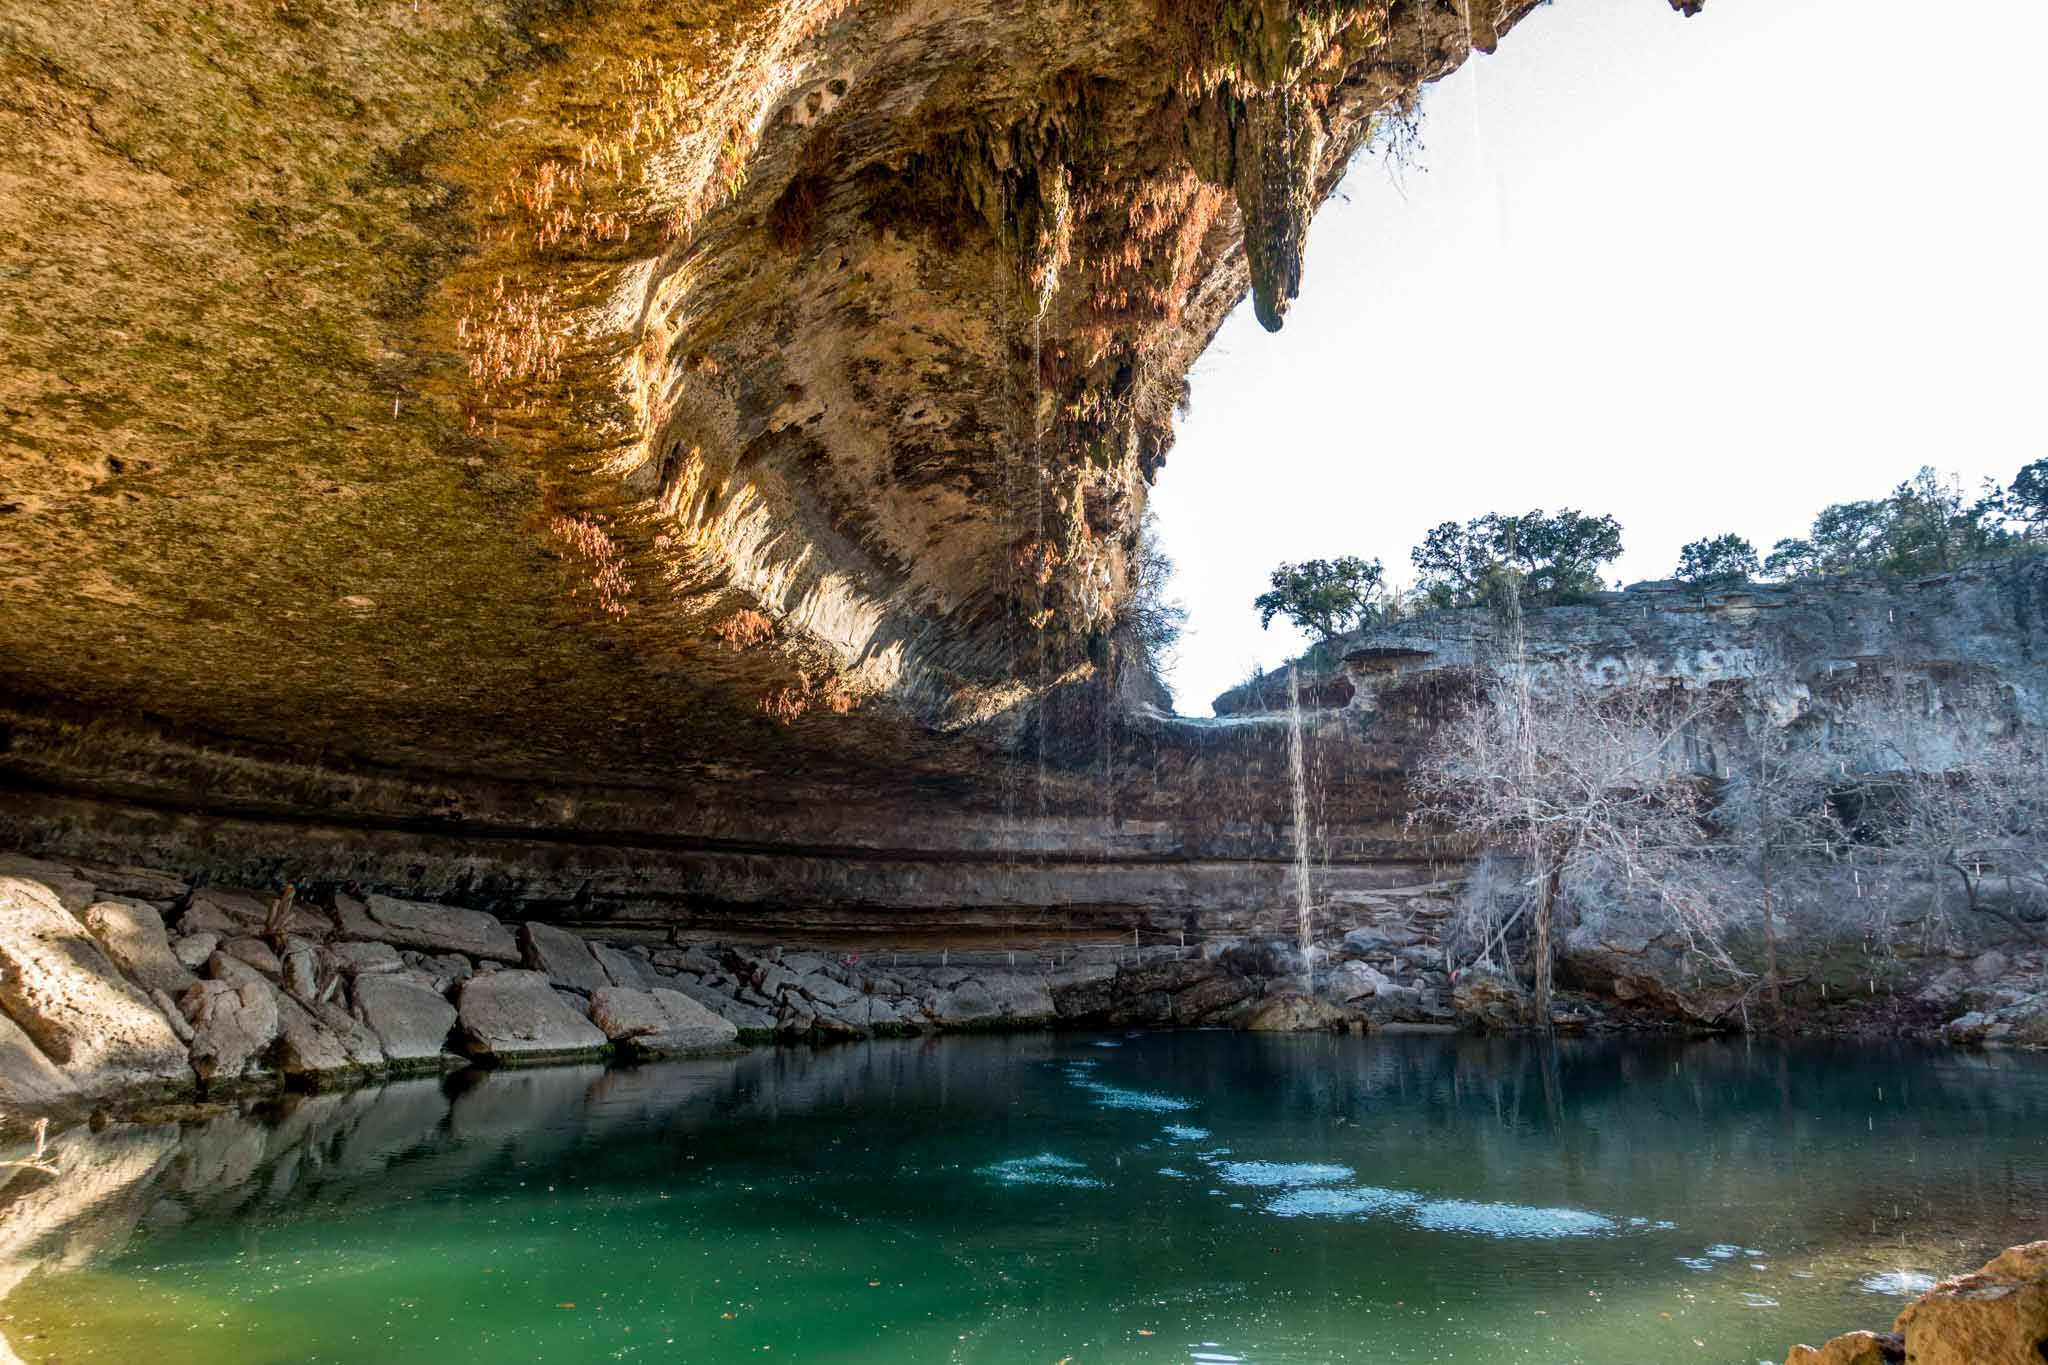 Water dripping into a large natural pool